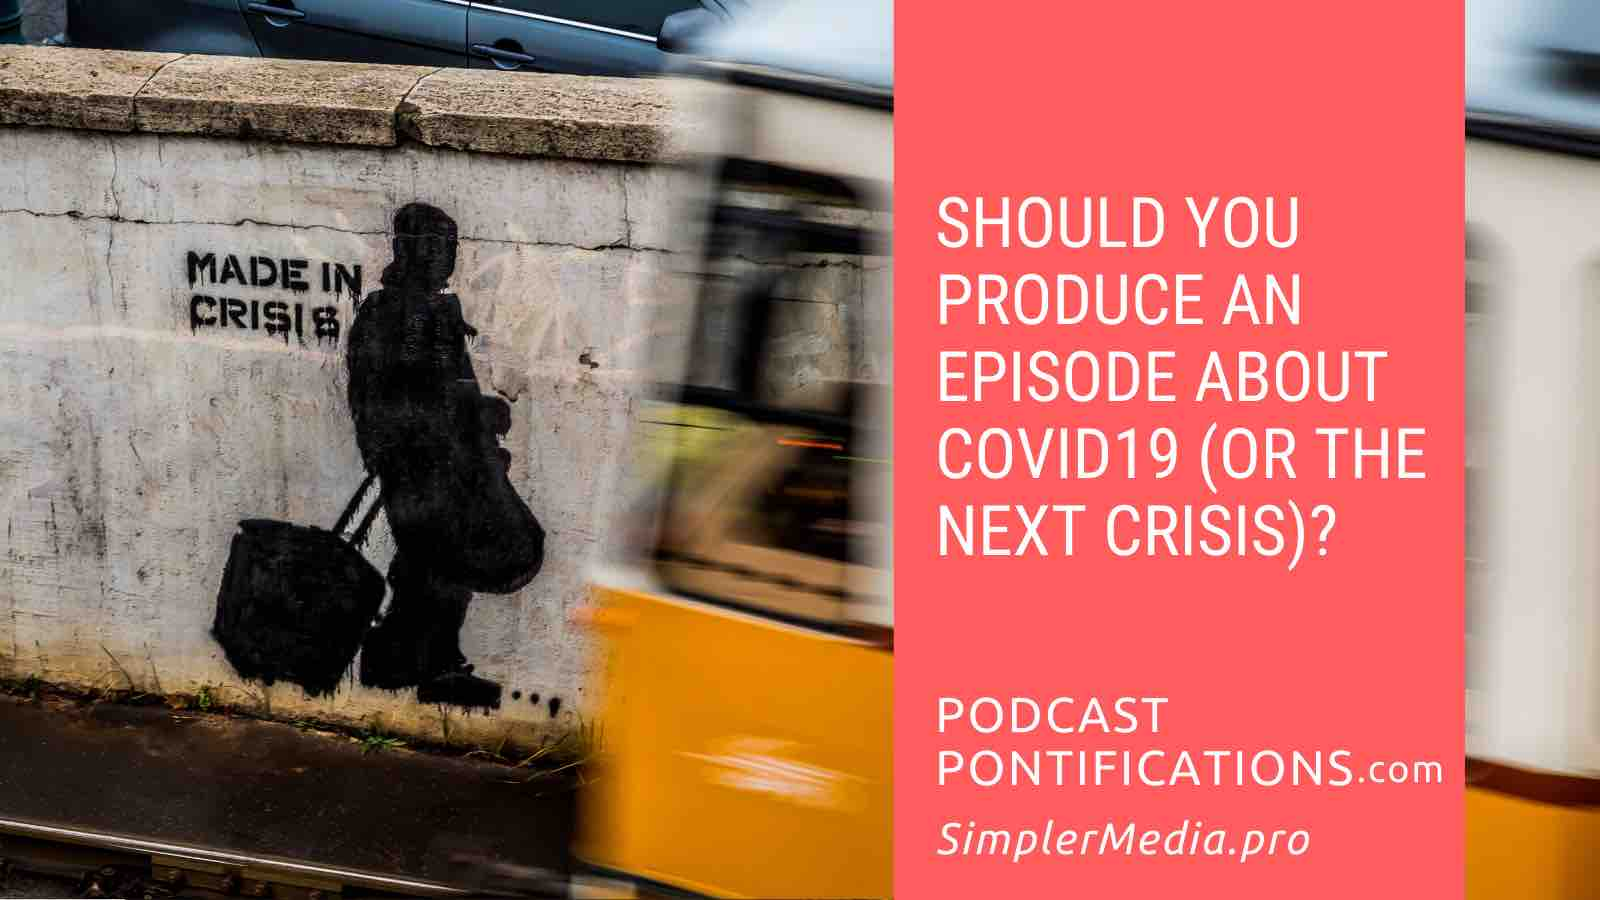 Should You Produce An Episode About COVID19 (Or The Next Crisis)?